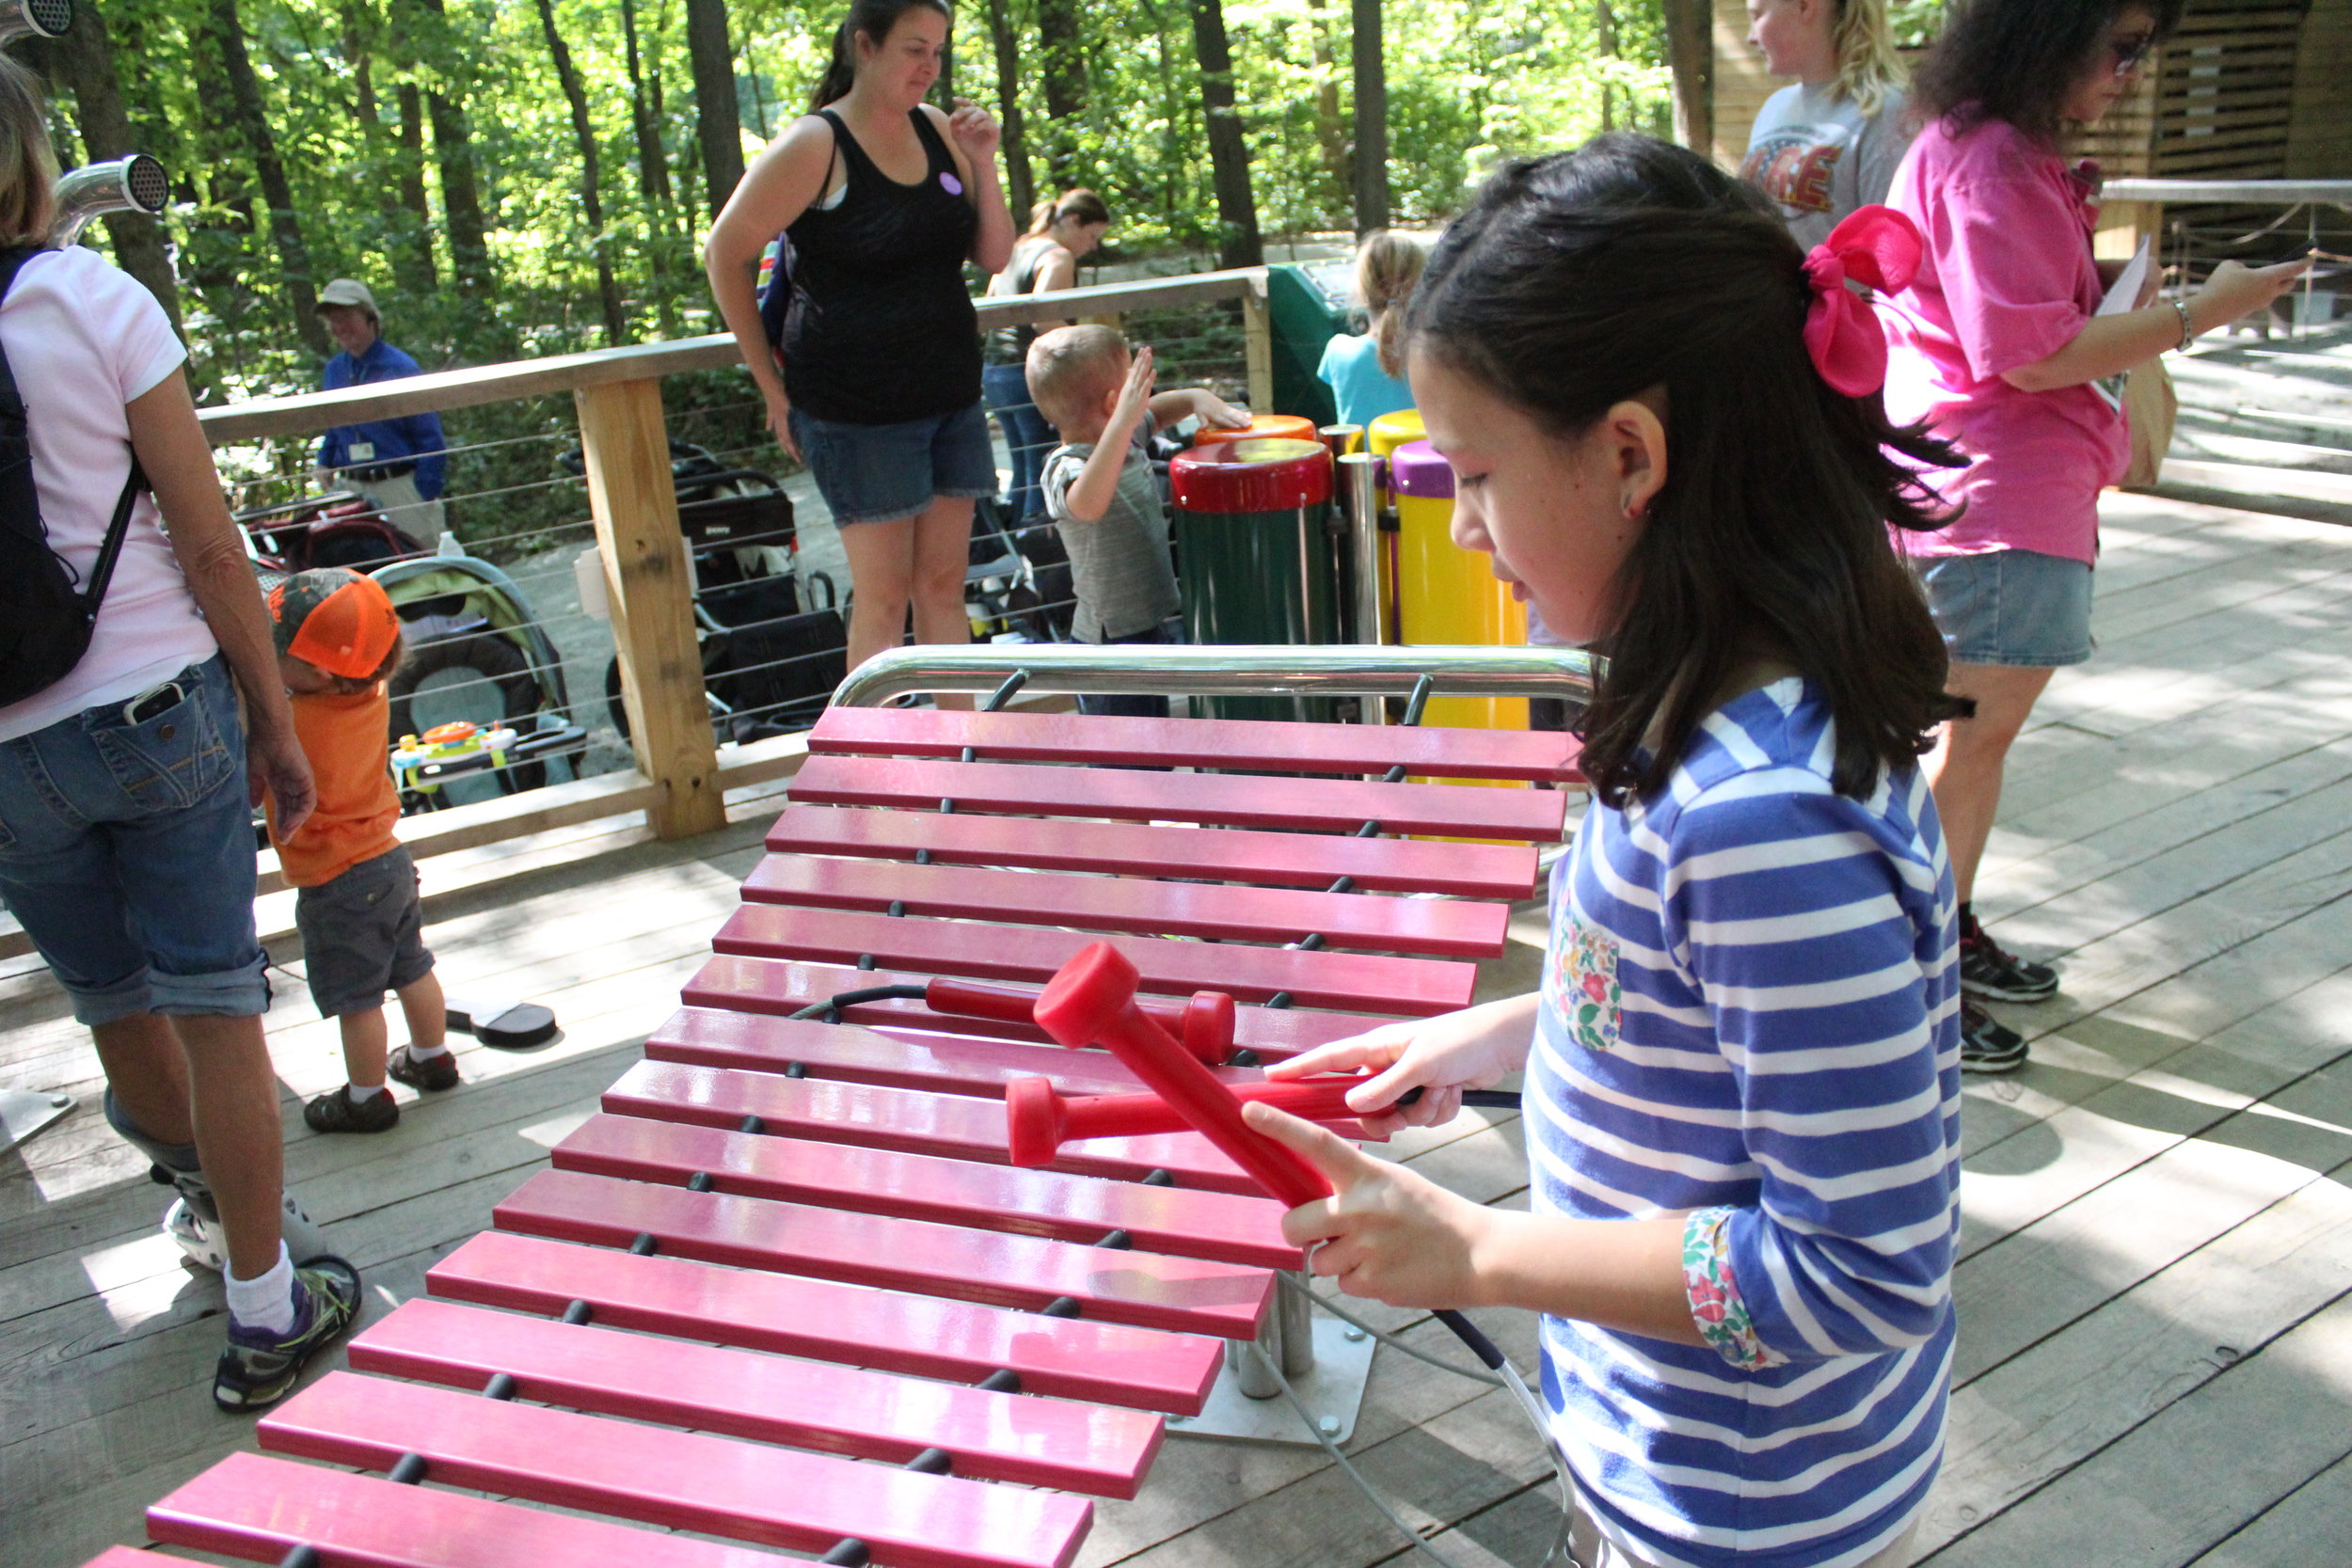 That's one cool big xylophone.  Playing music at the Treetop Outpost at Conner Prairie, Fishers Indiana